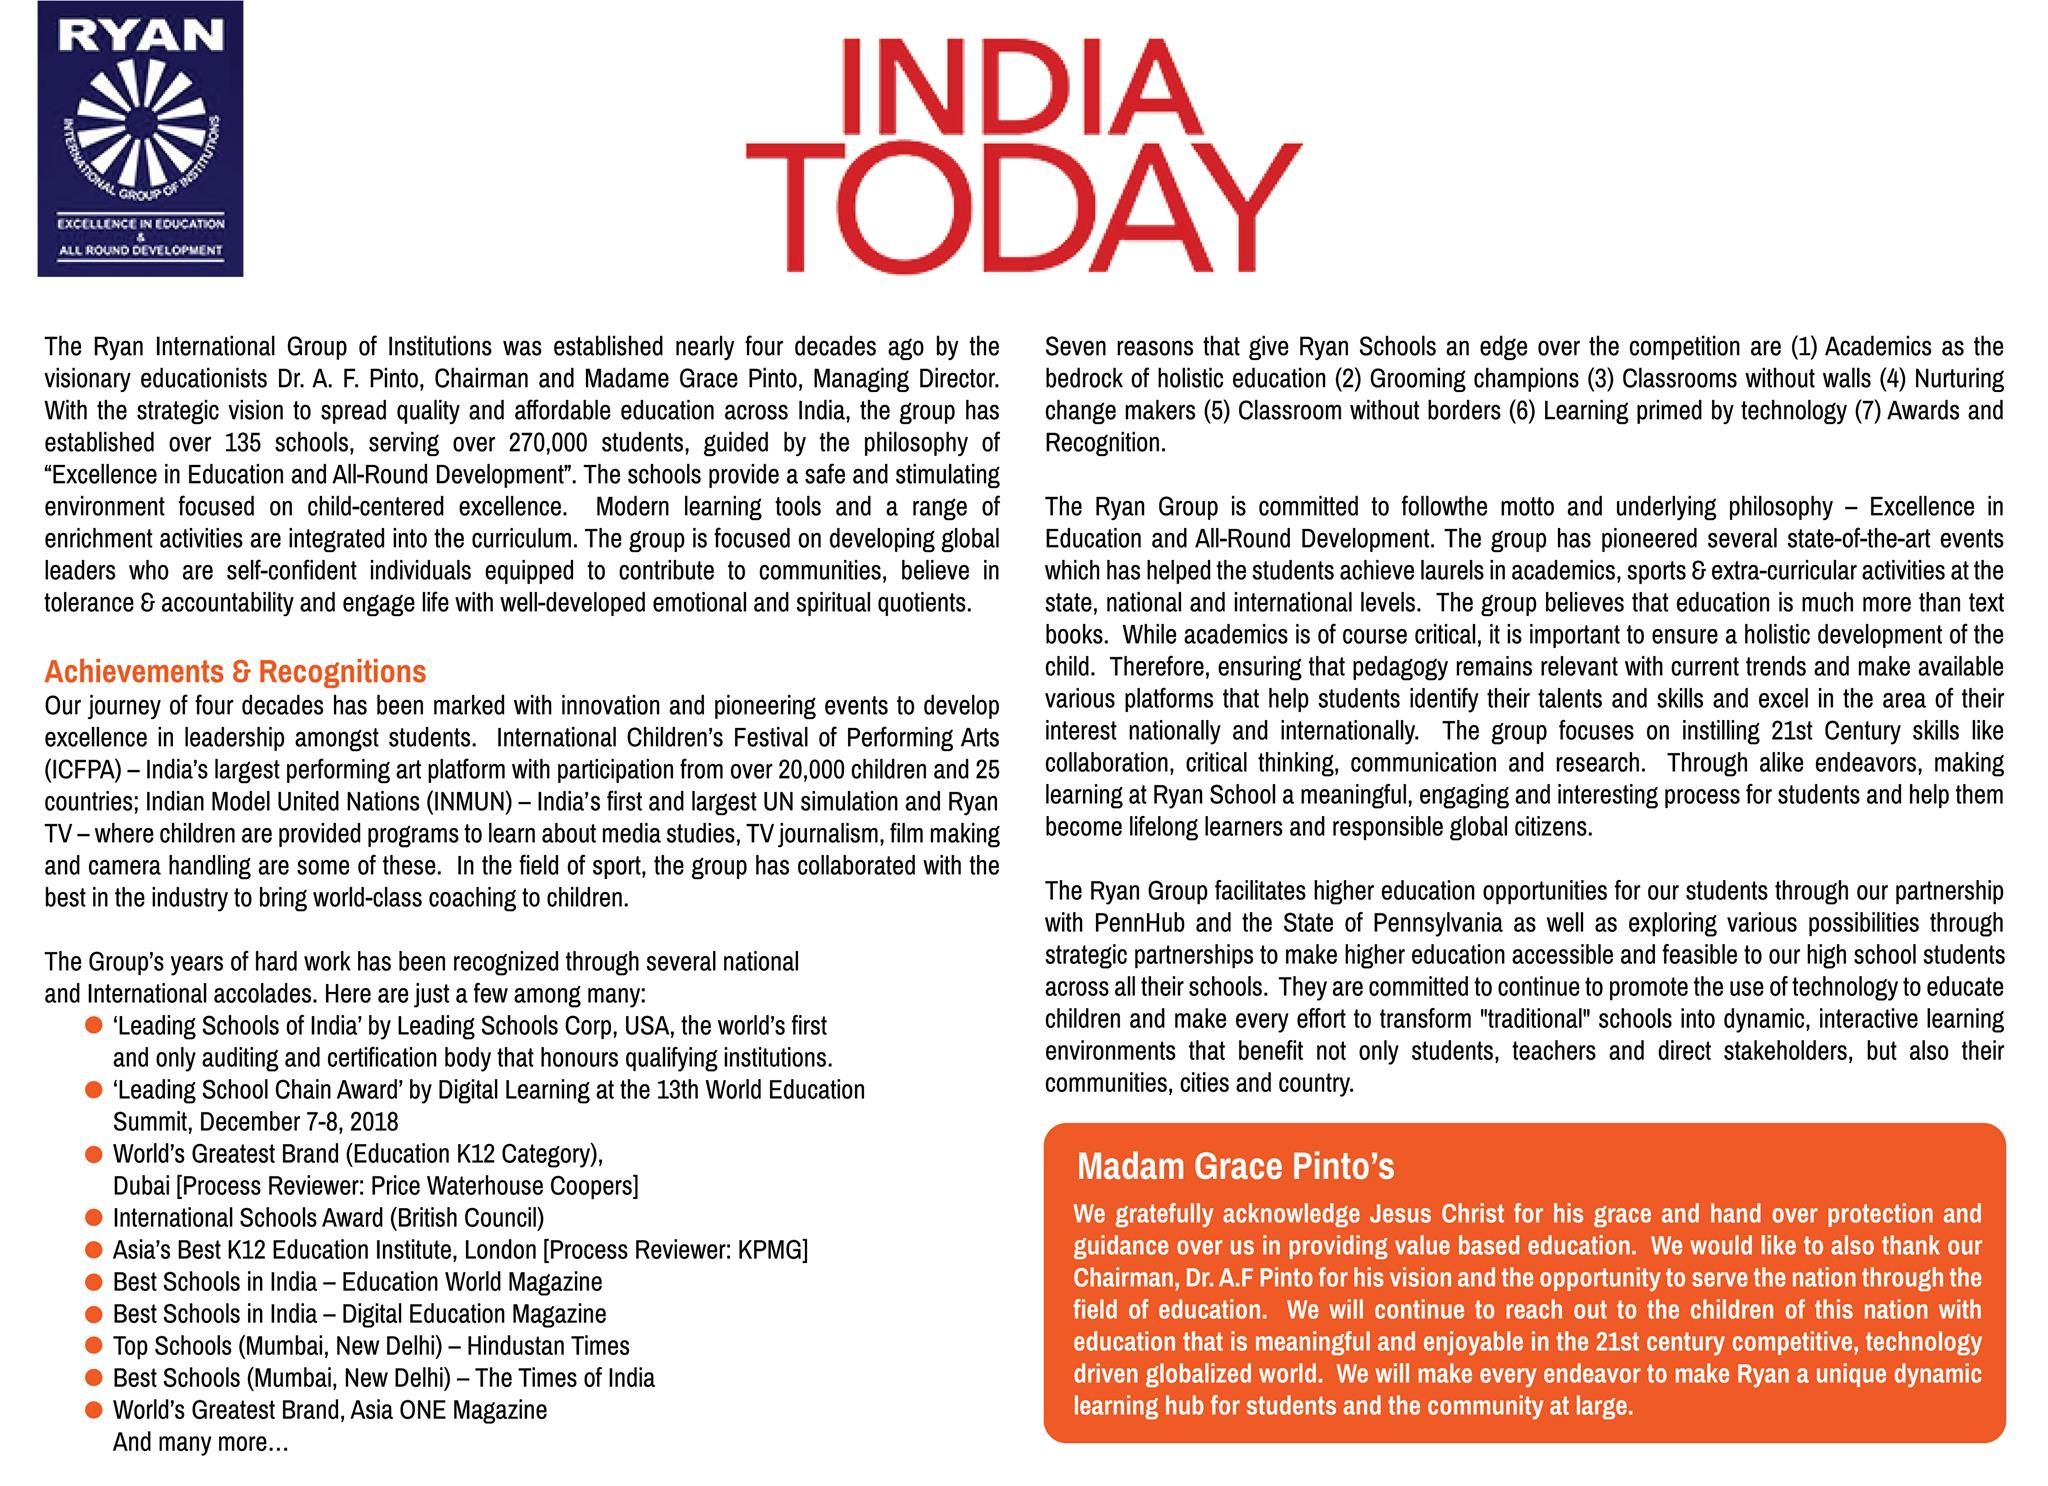 India Today recognizes Dr. Madam Grace Pinto as 'National Builders in the Education Sector'